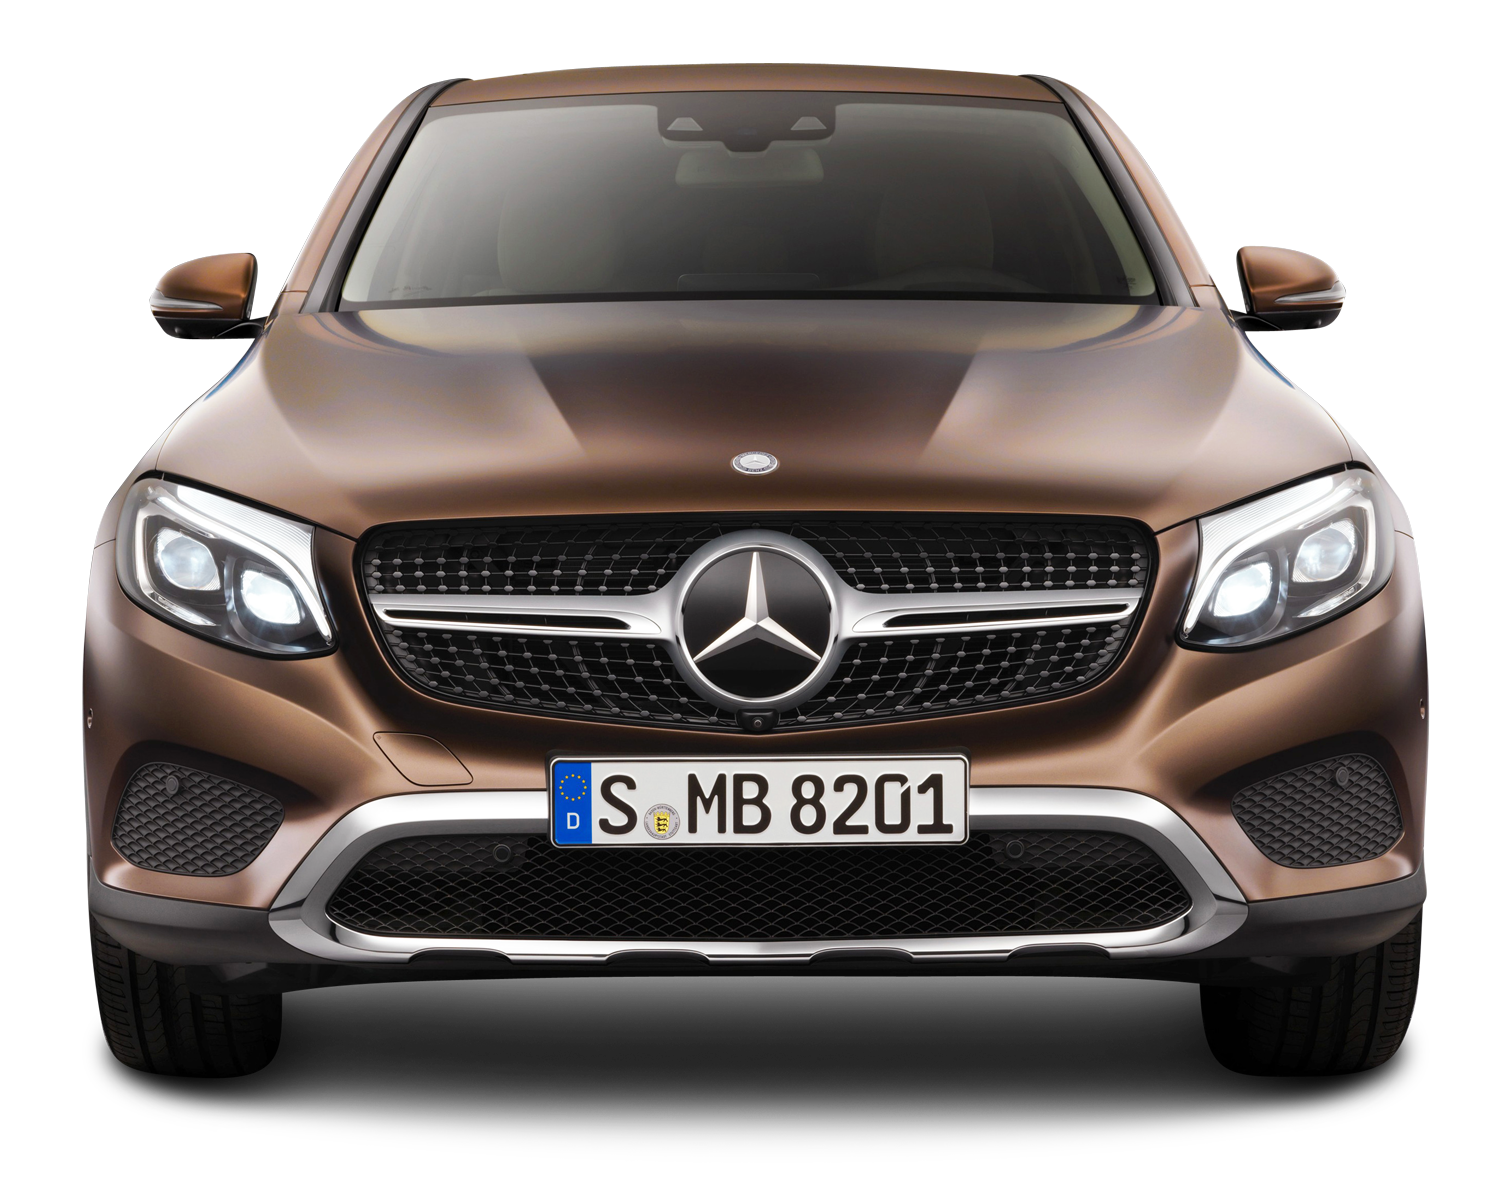 Car front view png. Brown mercedes benz gle